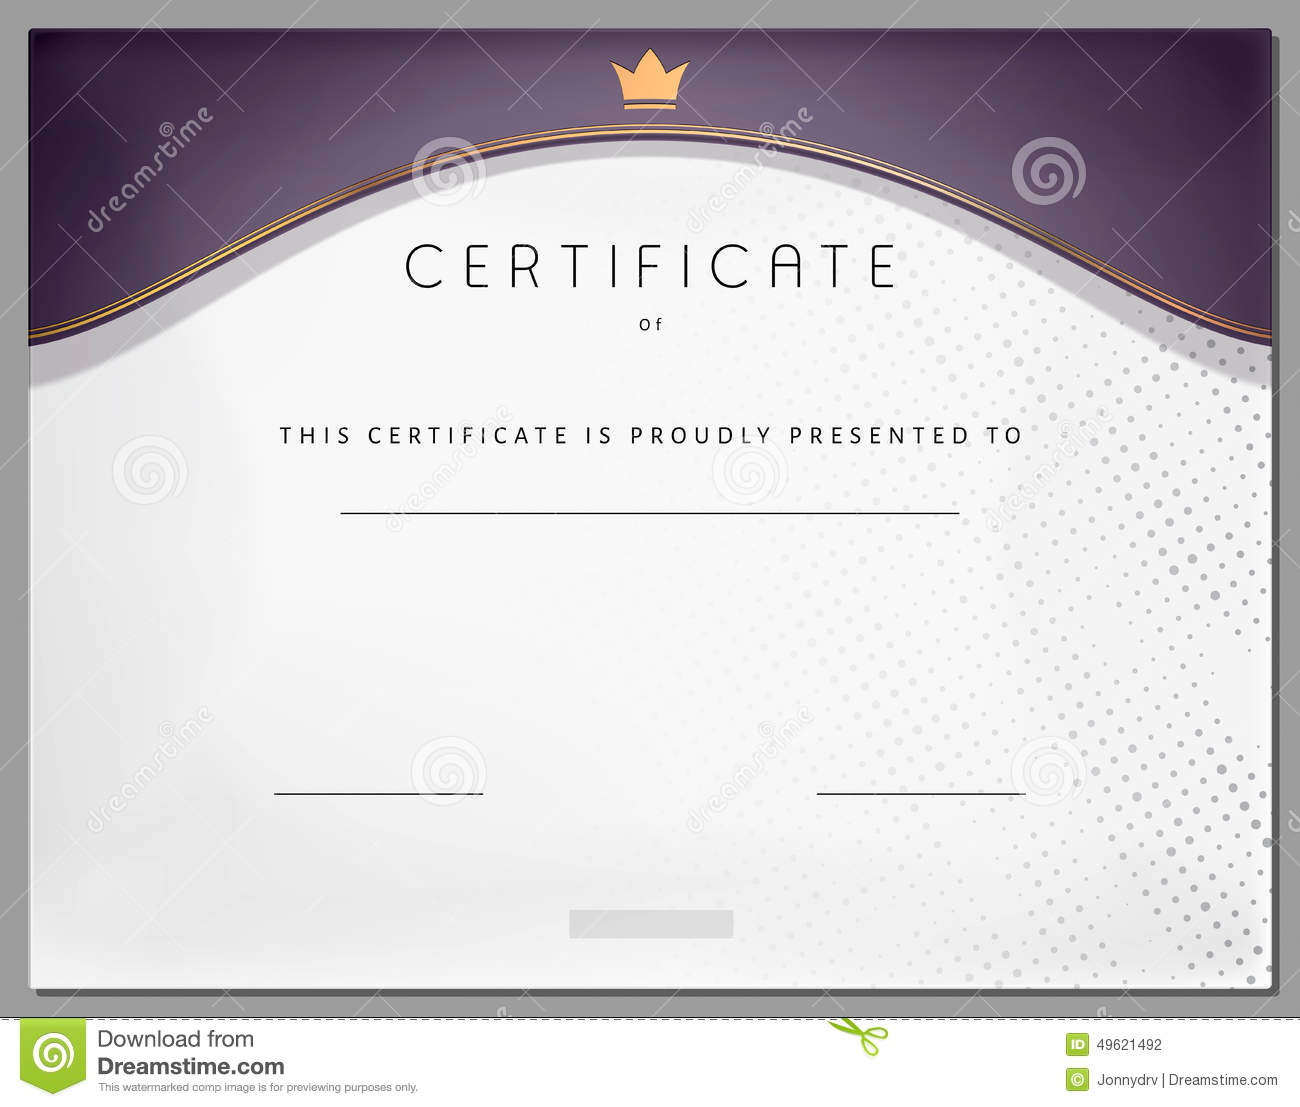 vintage certificate template with purple border and gold